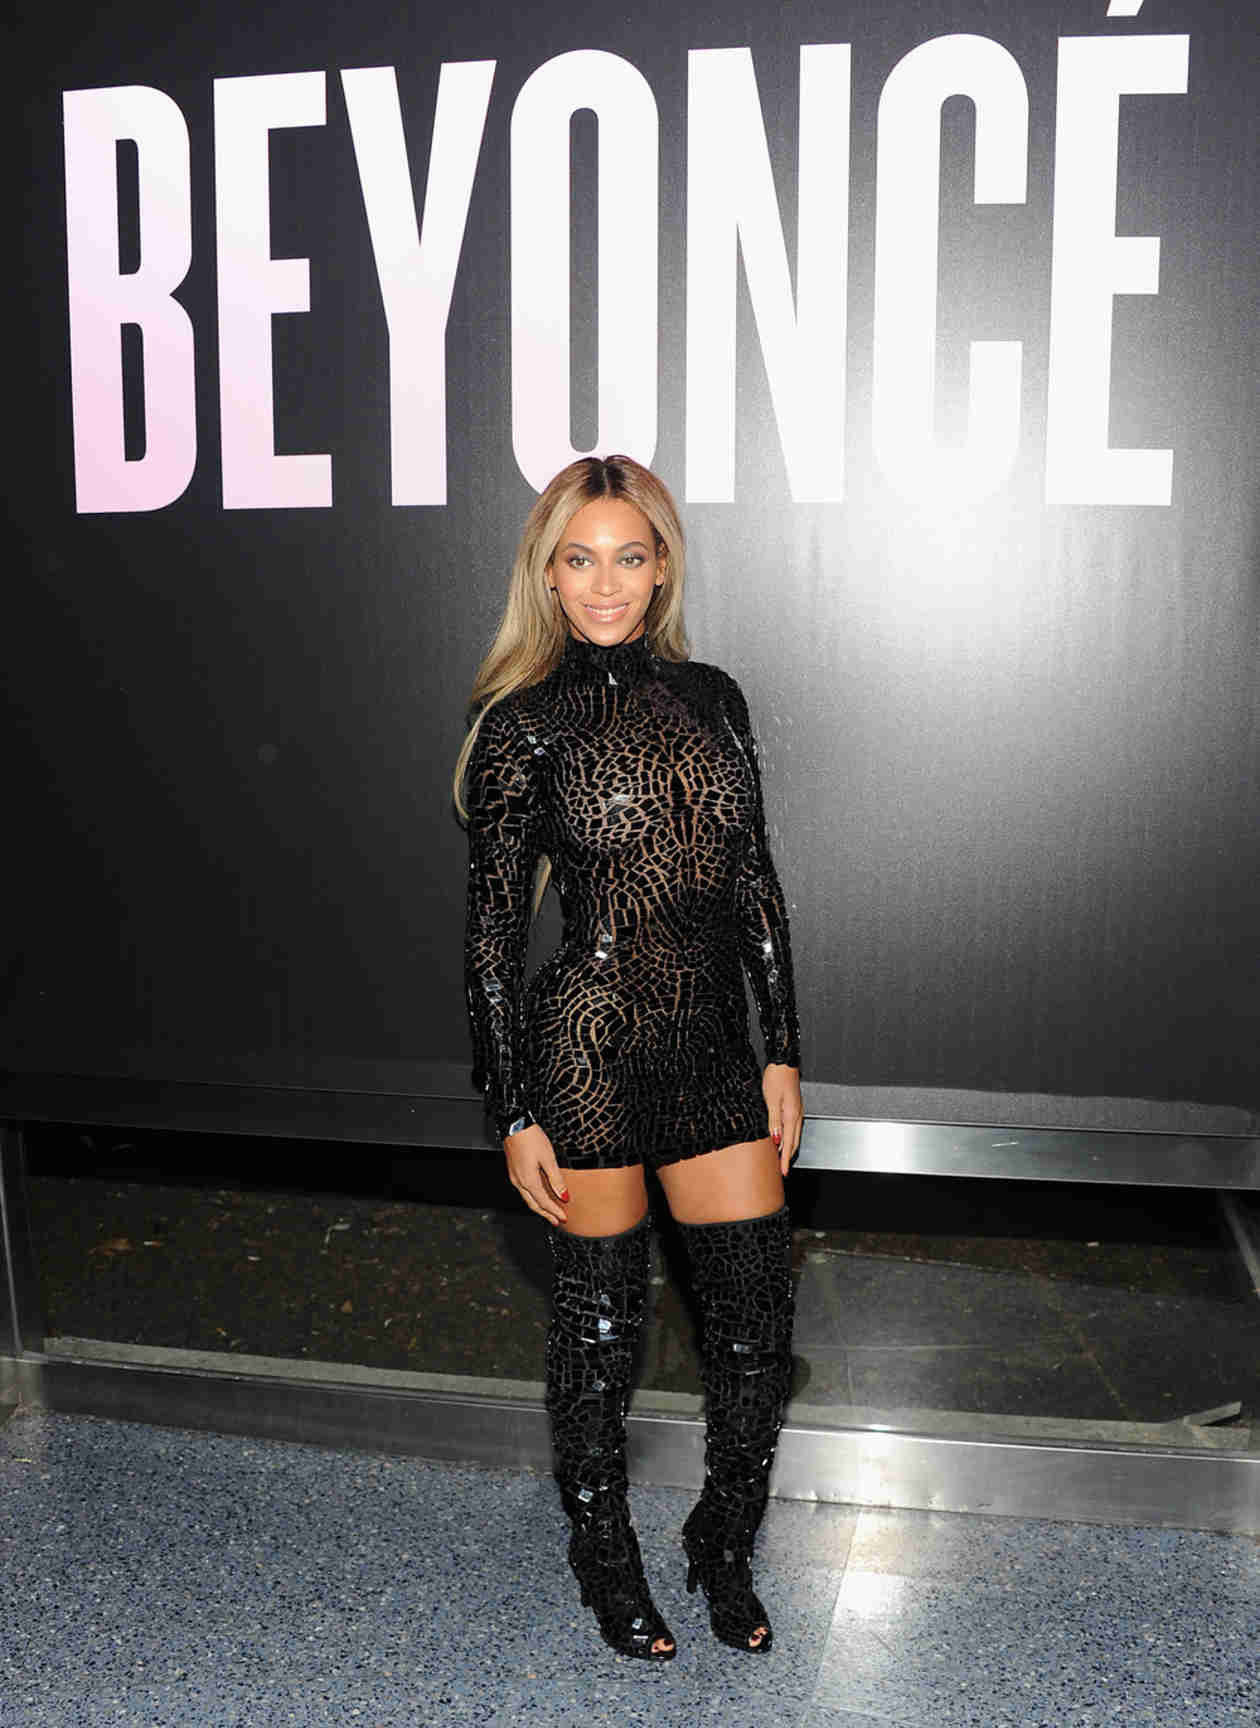 Beyoncé Shows Off Blue Ivy's Style in a New Adorable Snapshot (PHOTO)